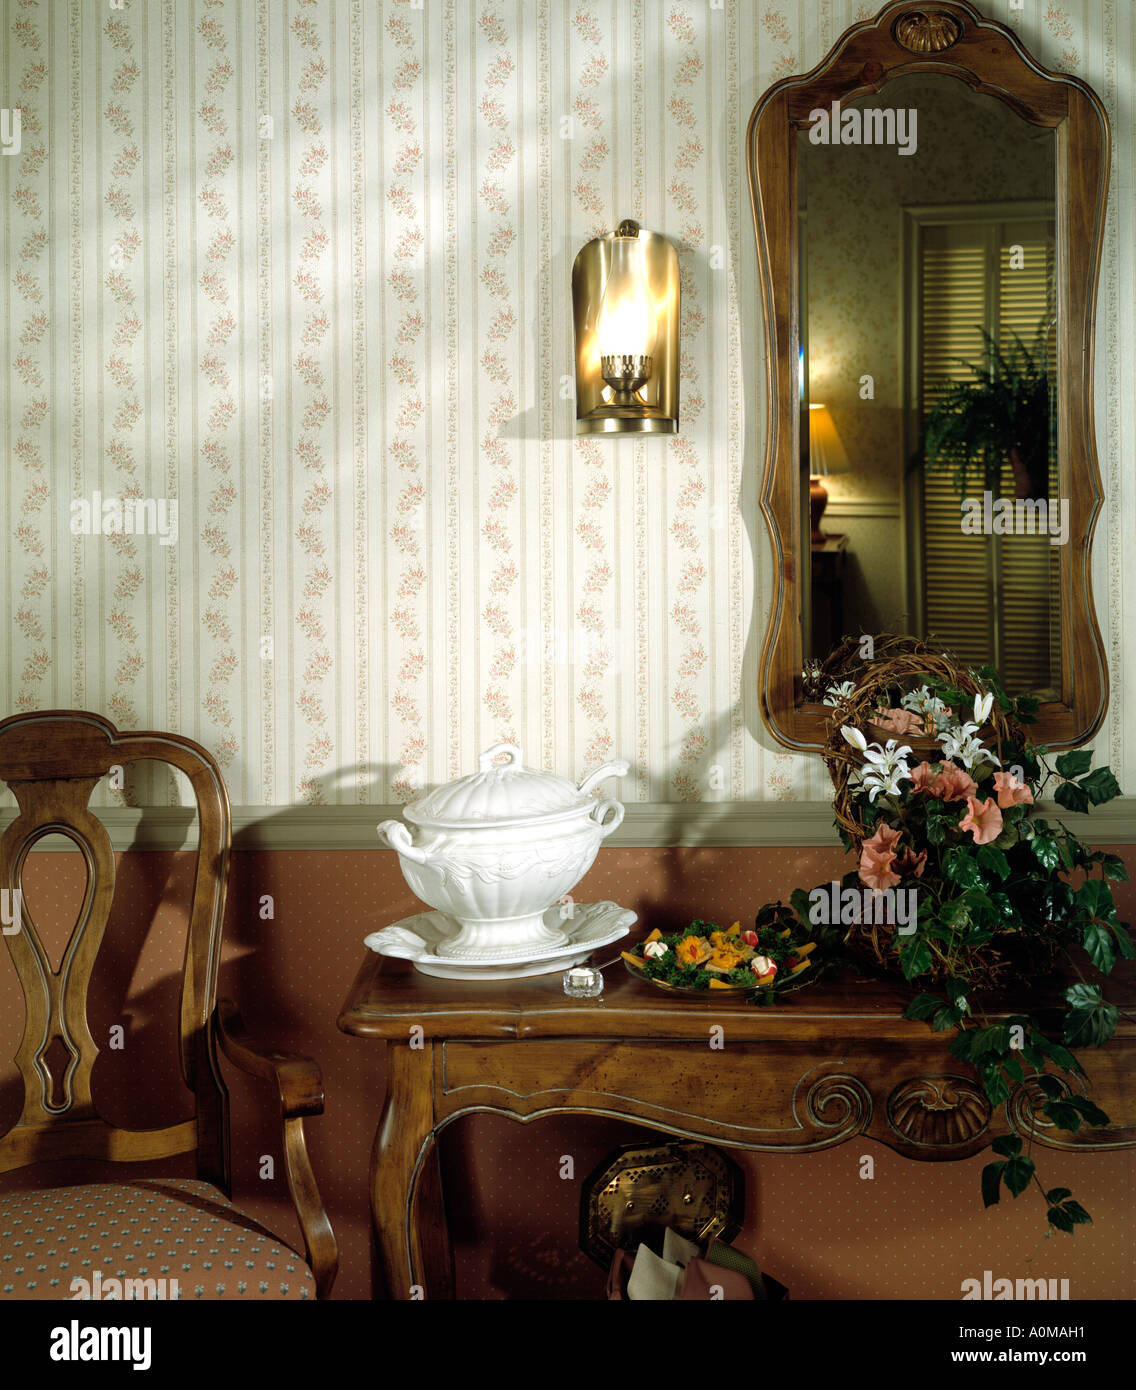 Room Interior Wallpaper Hallway Hall Entrance Dining Room